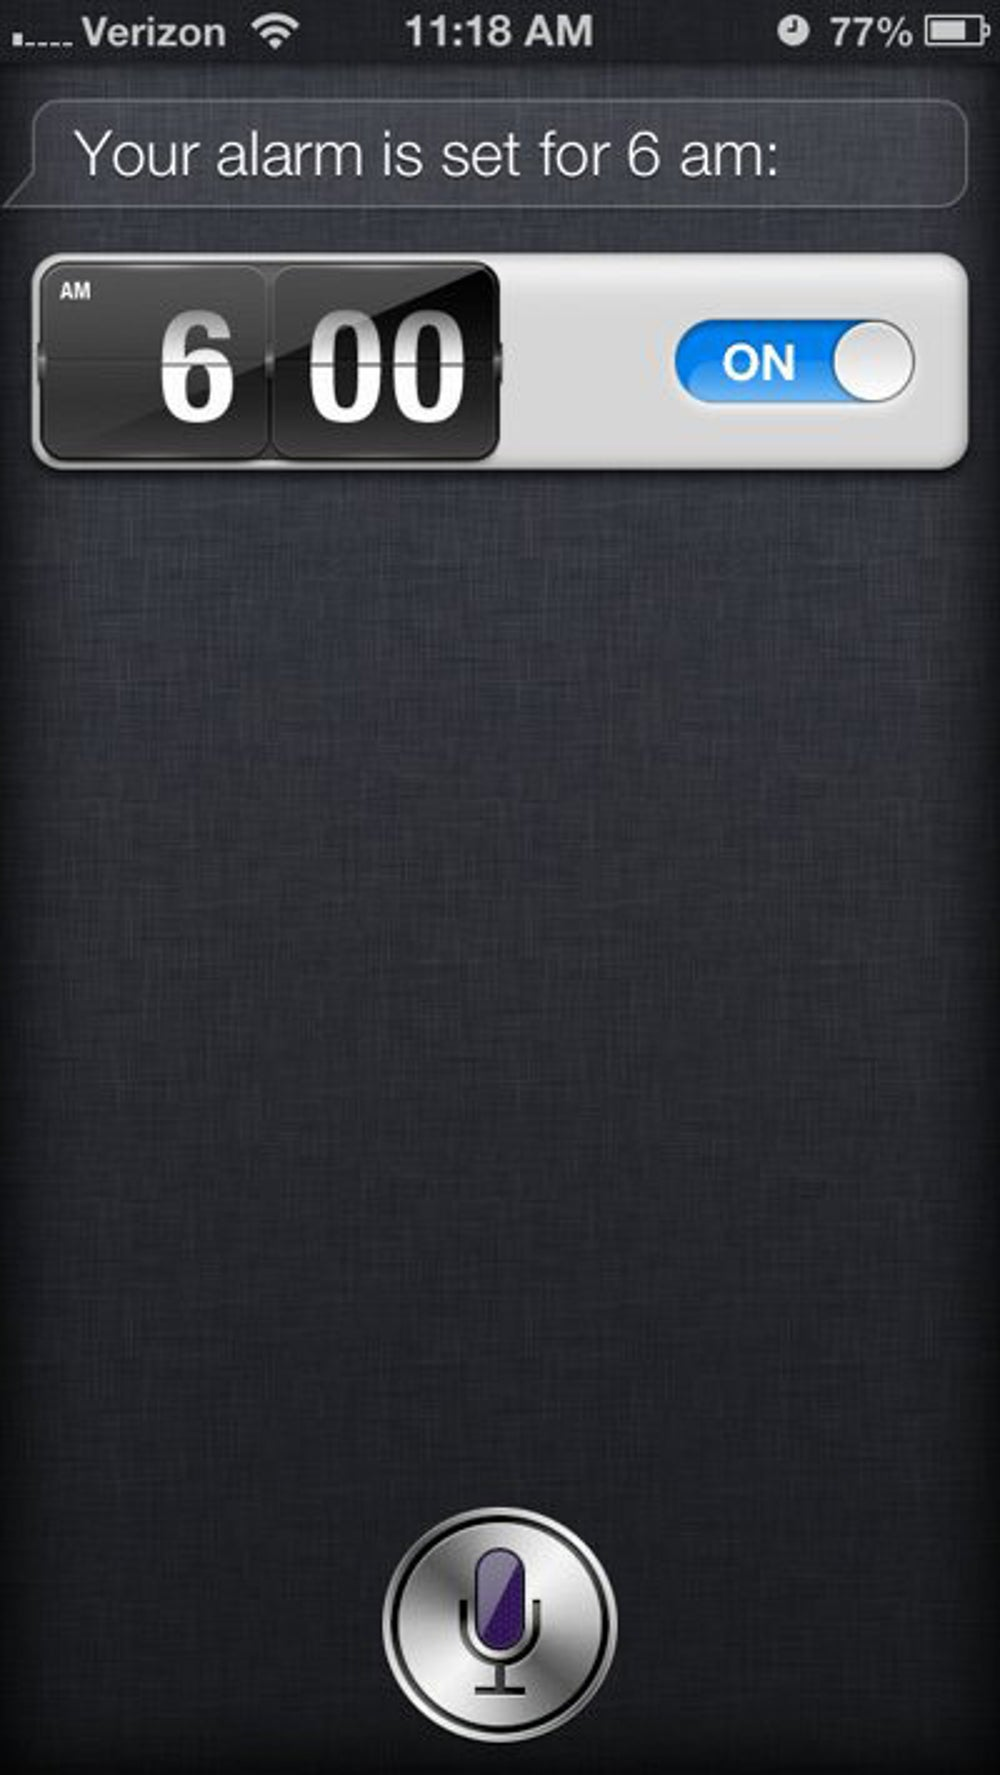 Use Siri to set alarms.